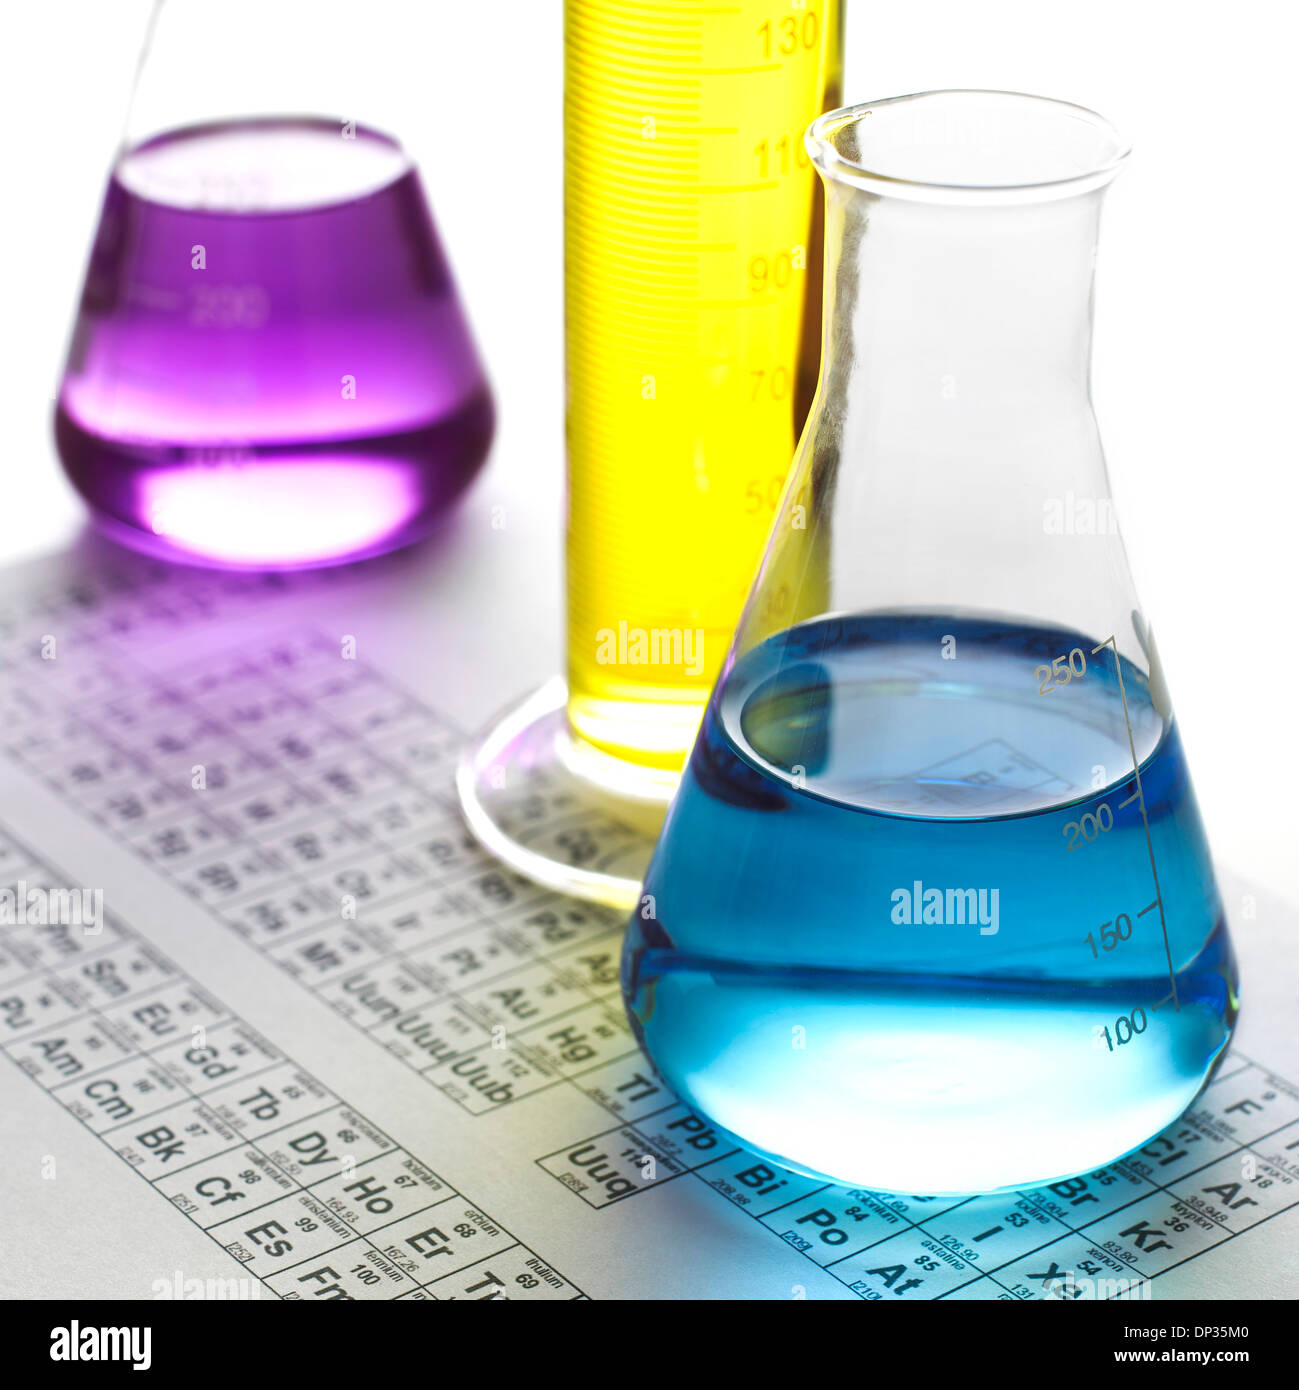 Chemical research, conceptual image Photo Stock